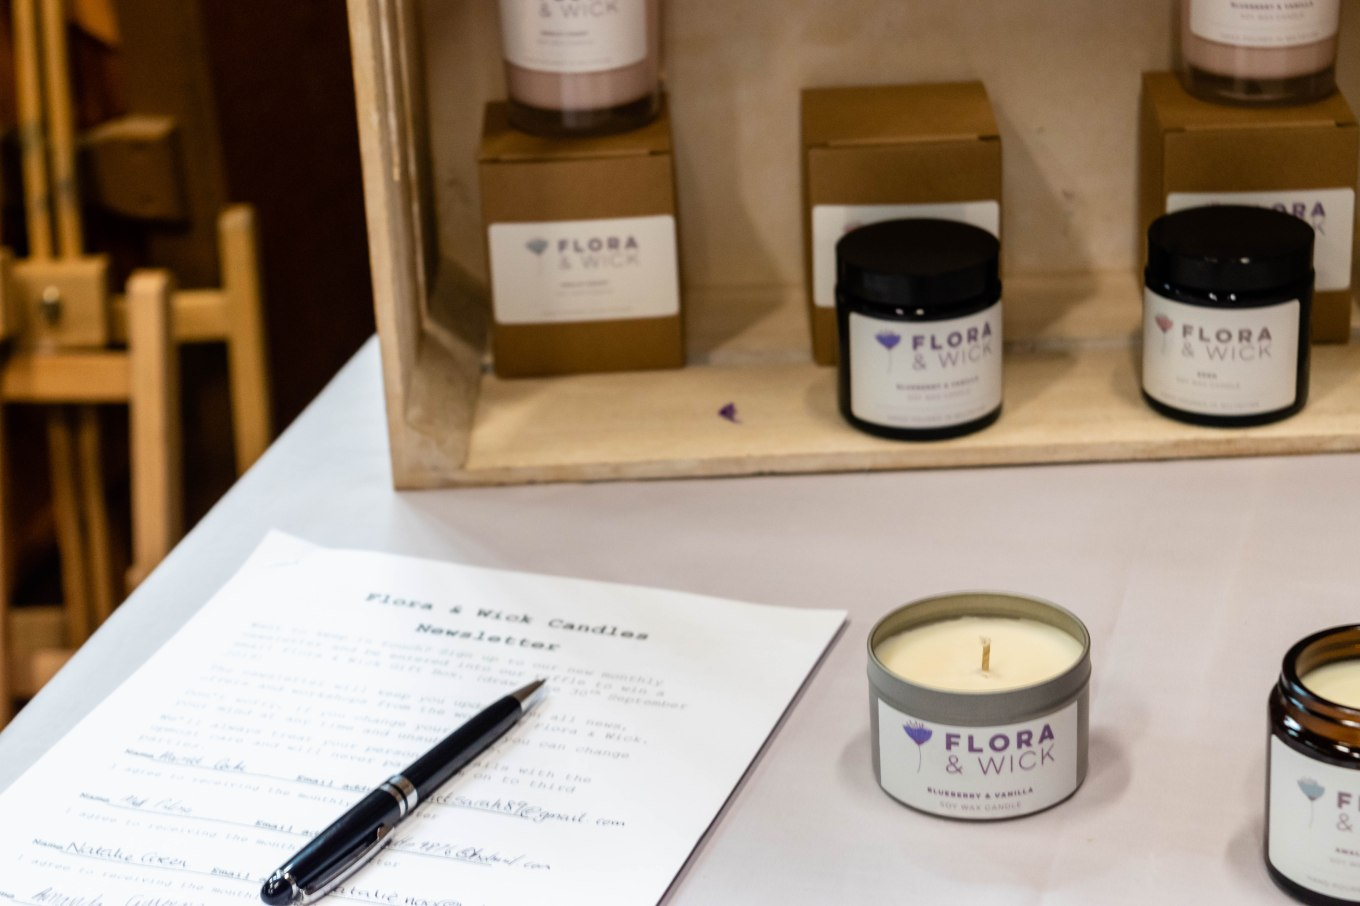 Flora & Wick Candles